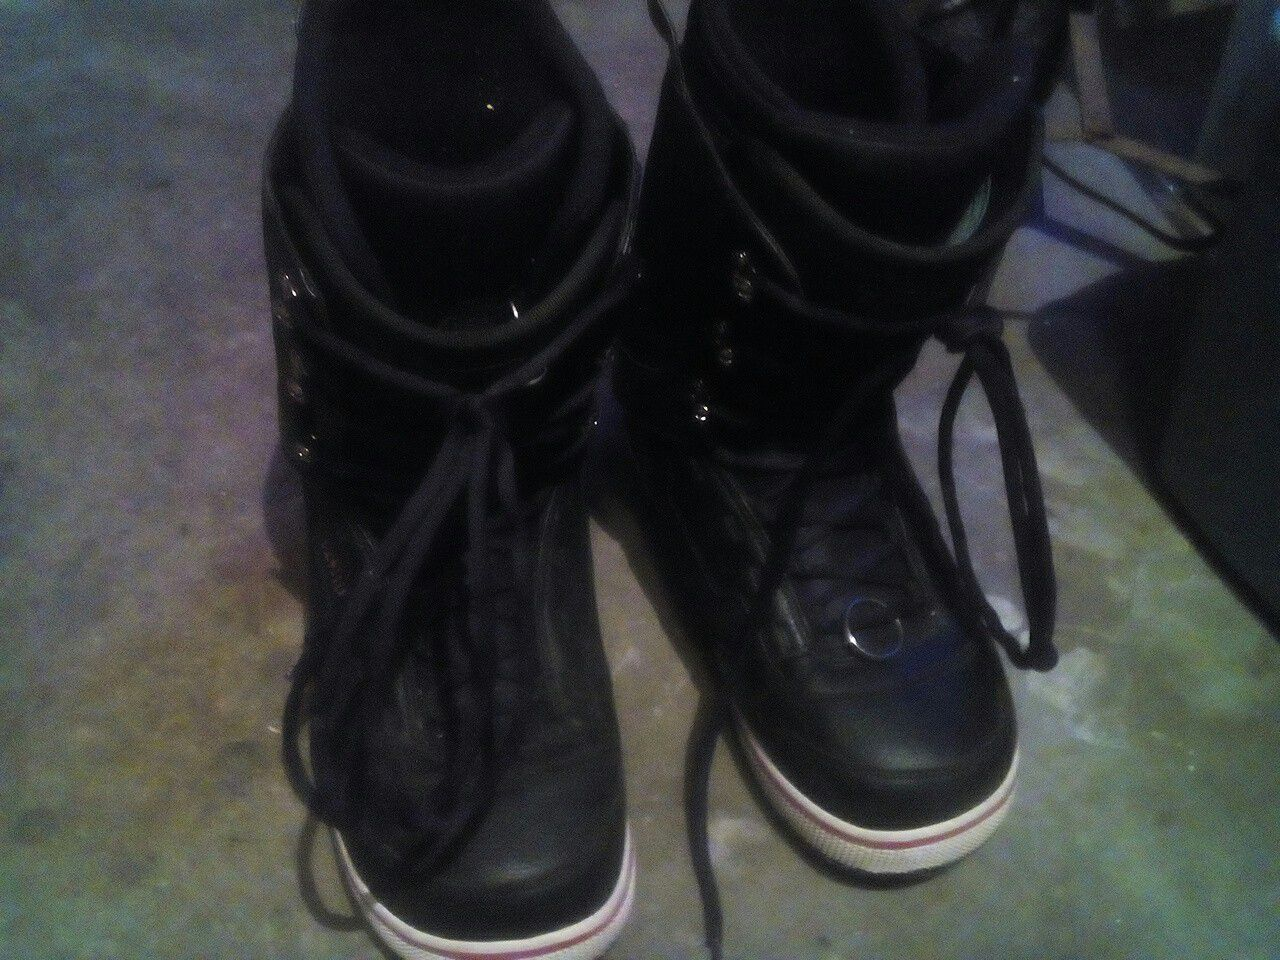 Men's adults size 13 for inconstant snowboard boots